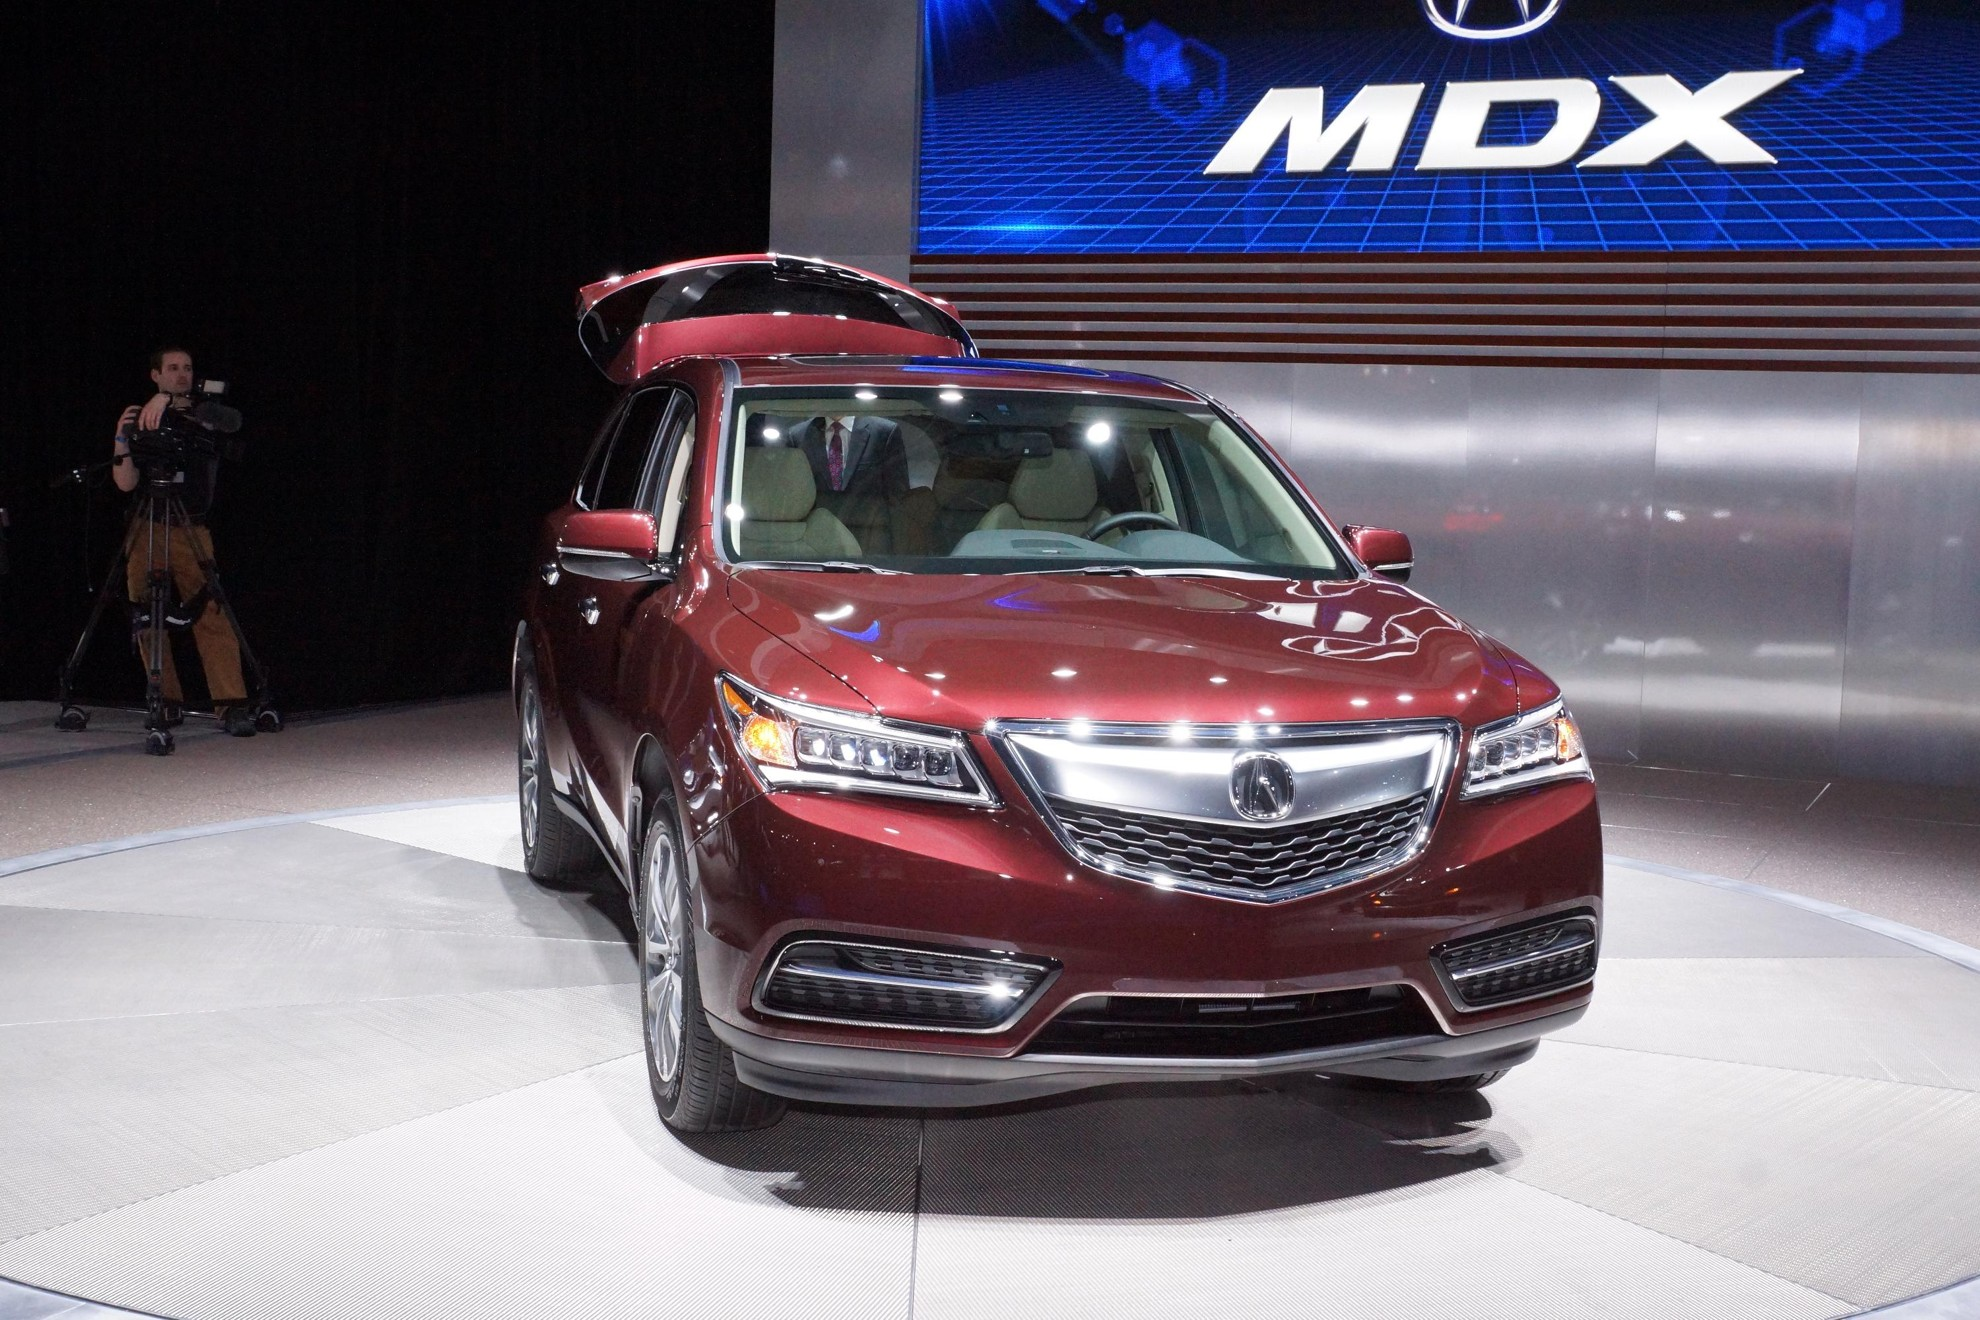 Acura MDX at the New York Auto Show